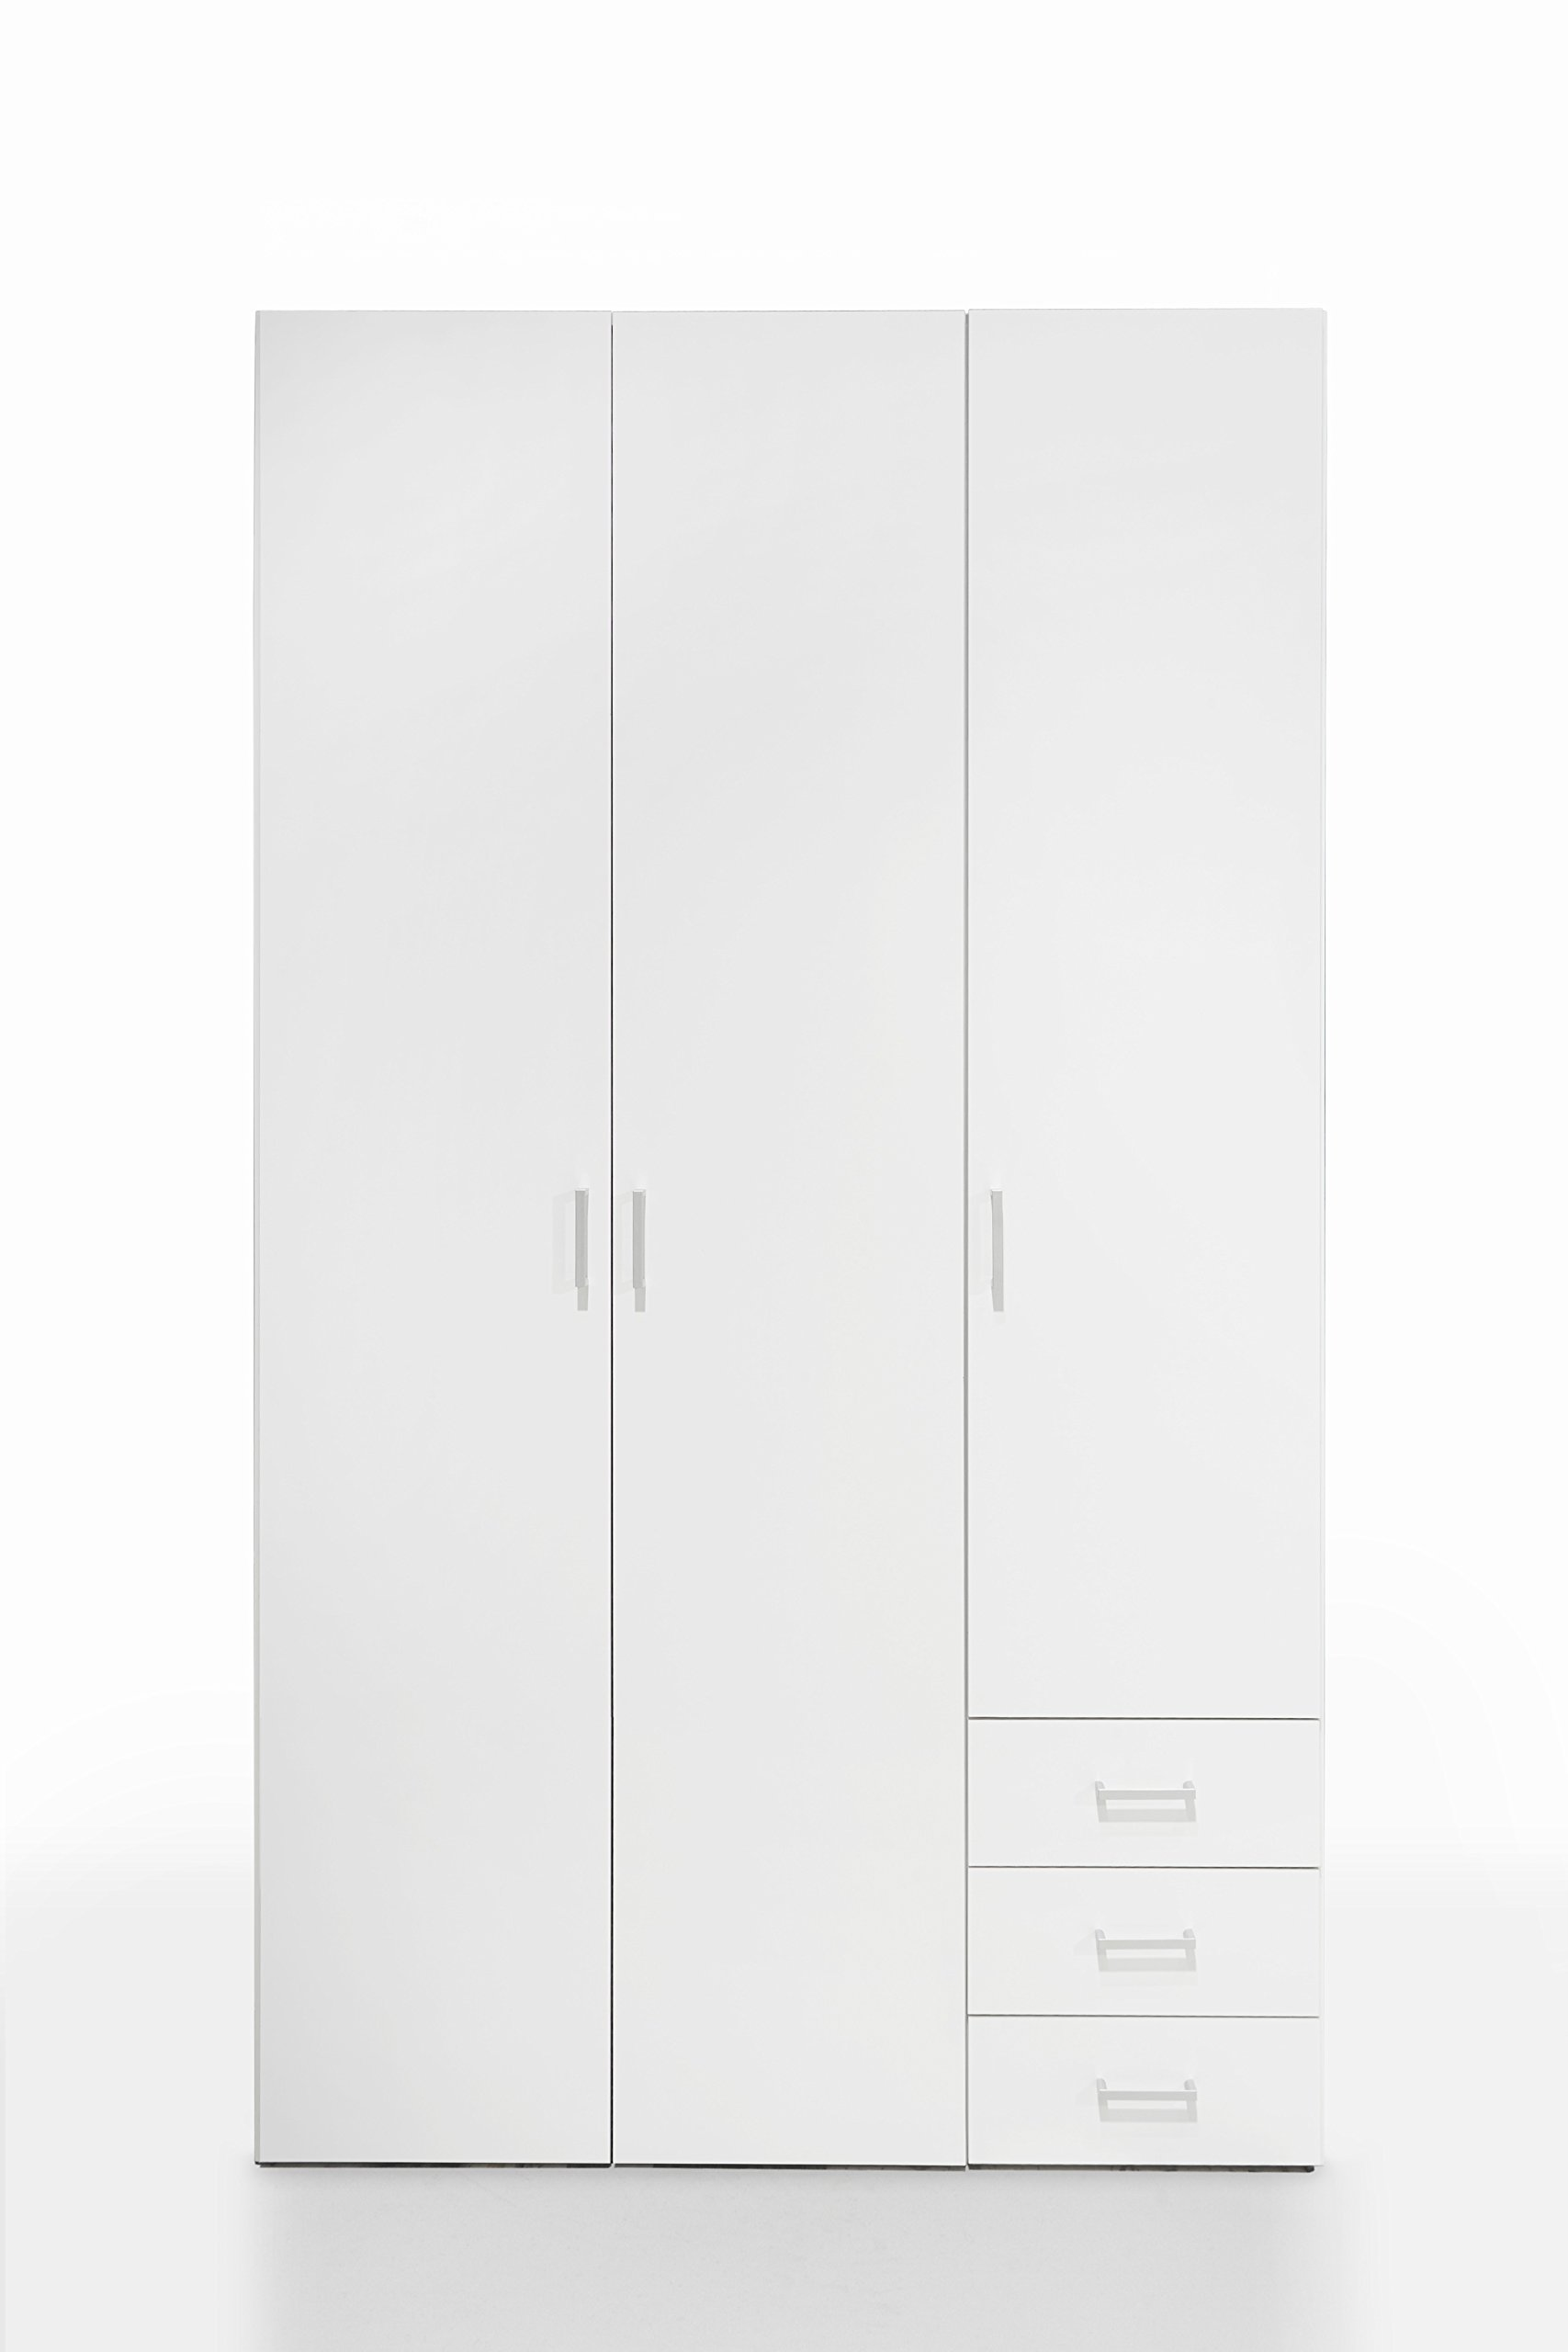 Tvilum 704094949 Space 3 Drawer and and 3 Door Wardrobe, White